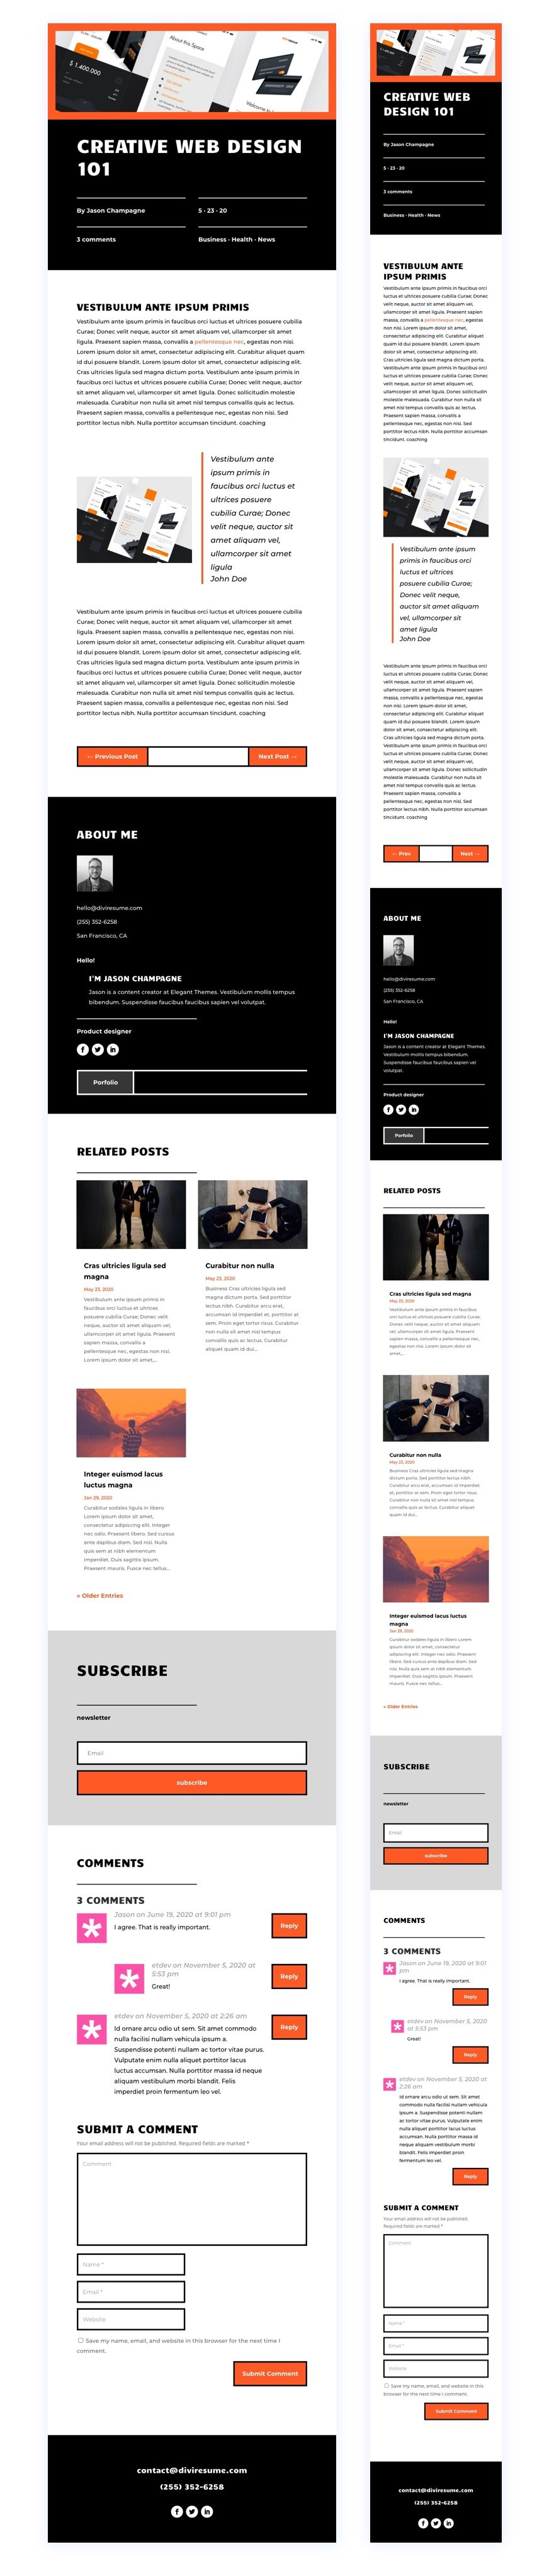 blog post template for Divi's Creative CV Layout Pack